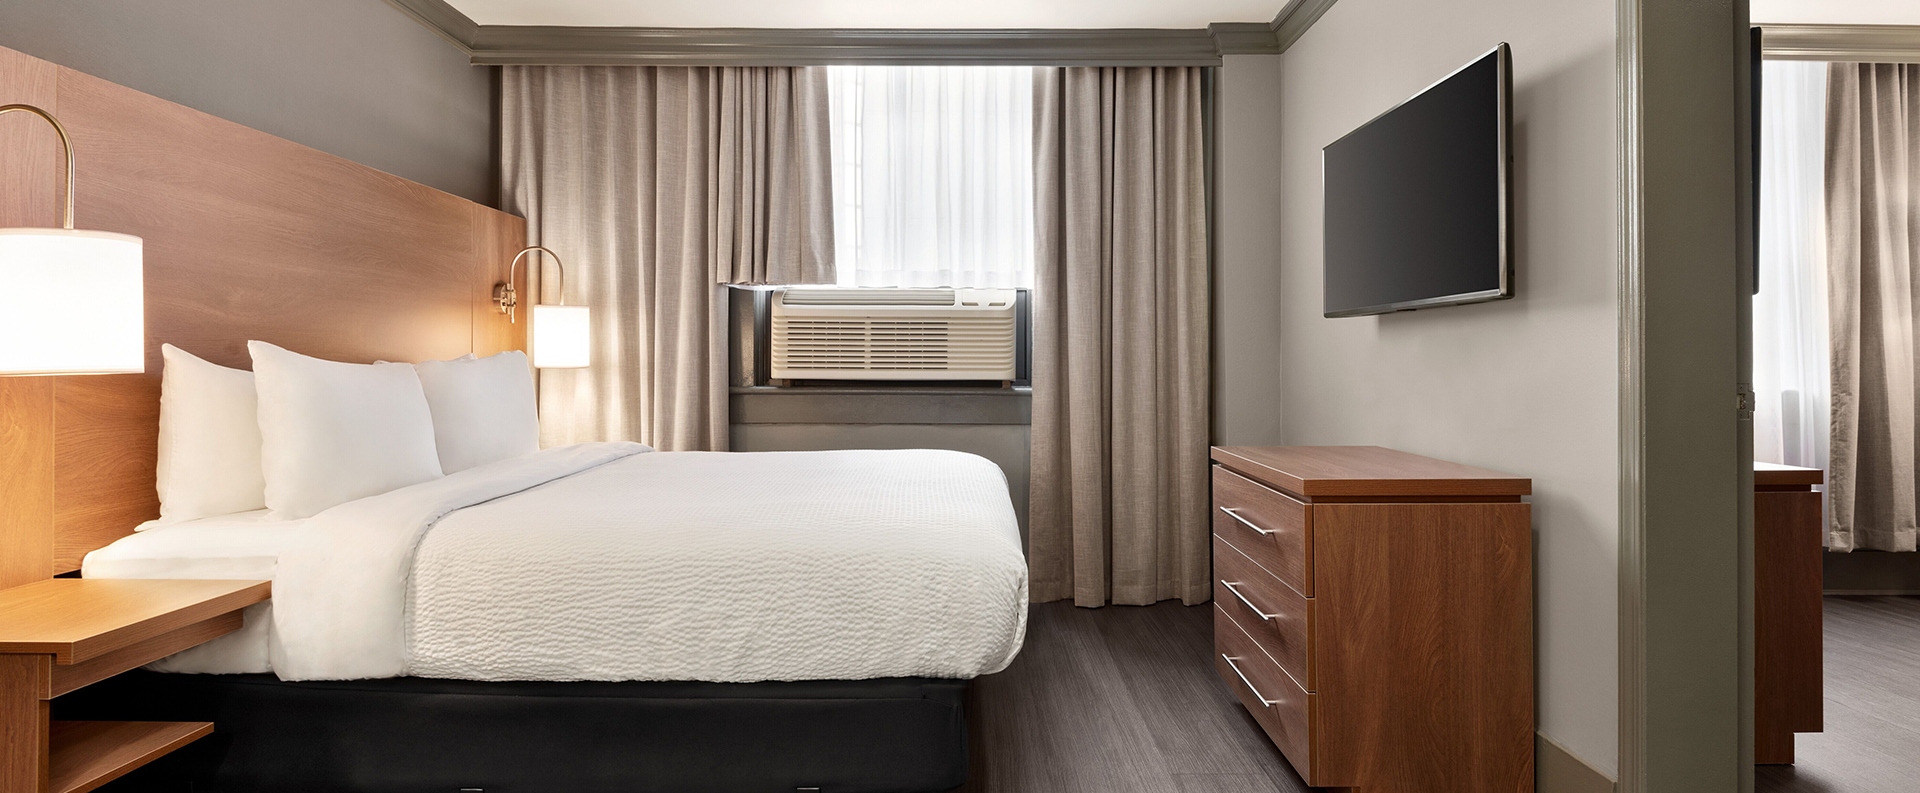 The Standard Double suite at Days Inn Vancouver Downtown with a bed made up in white linen with lamps on night tables flanking both sides of the bed.